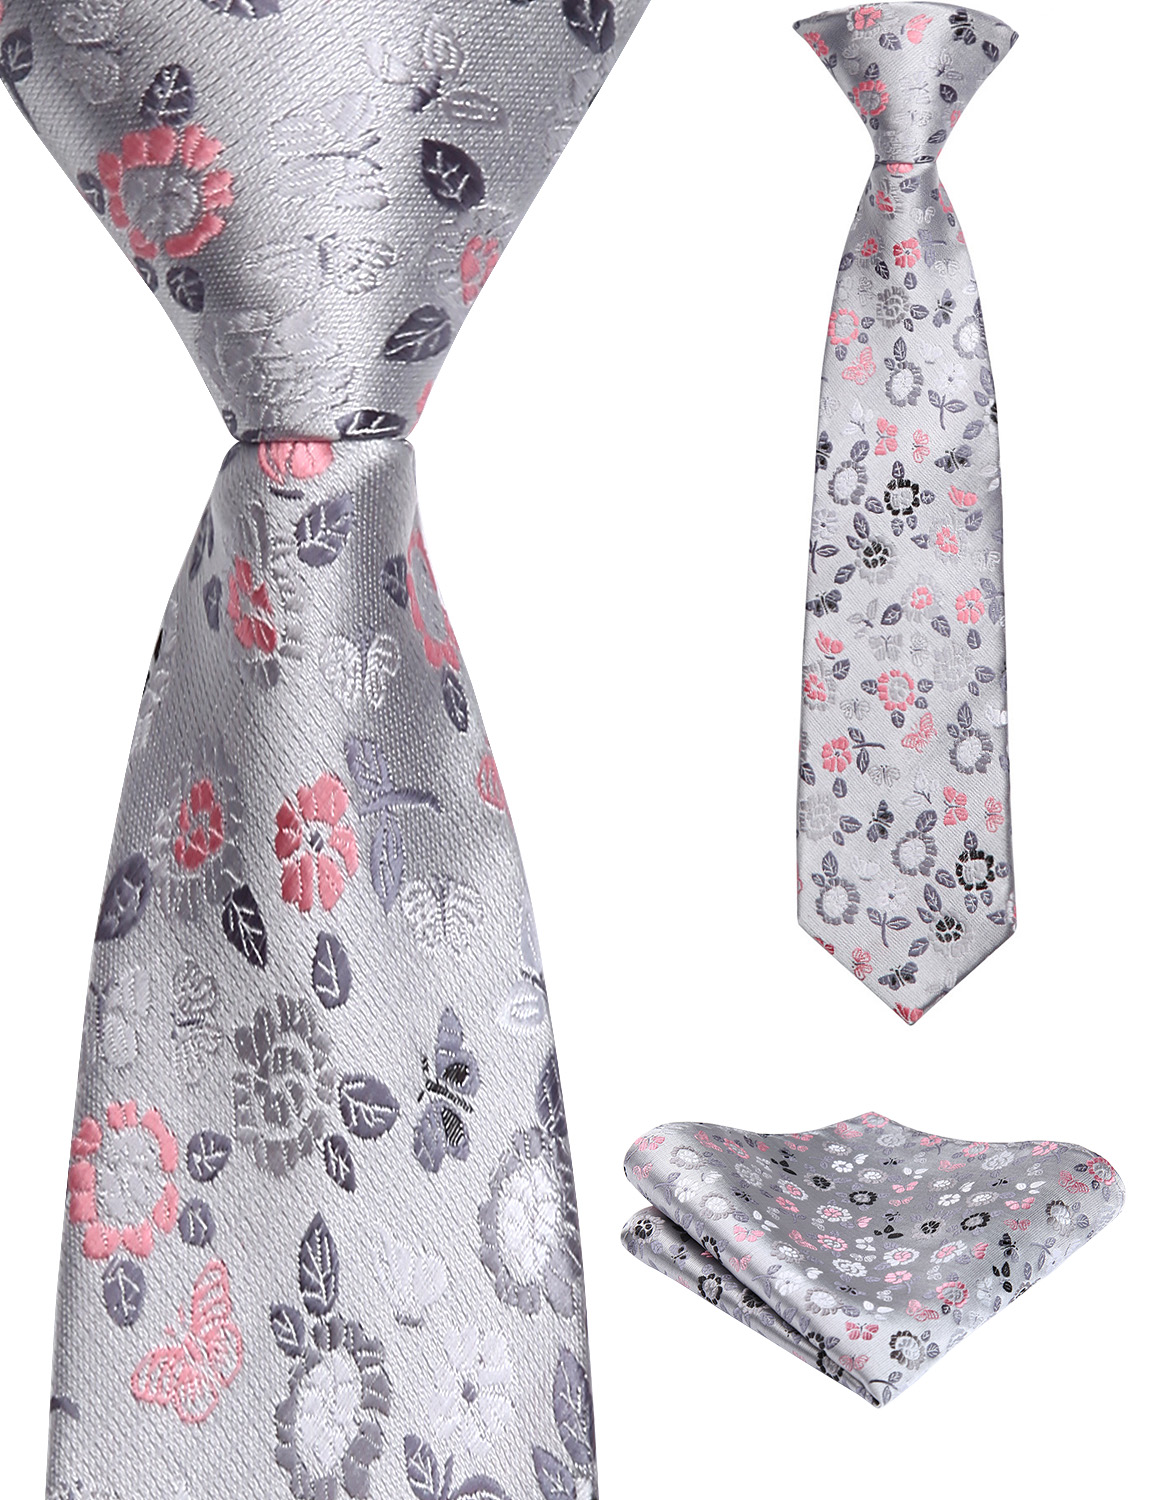 38cm Child Pre-tied Necktie For Boys Floral Woven Handkerchief Set Kids School Parent-Child Tie  Pocket Square Set